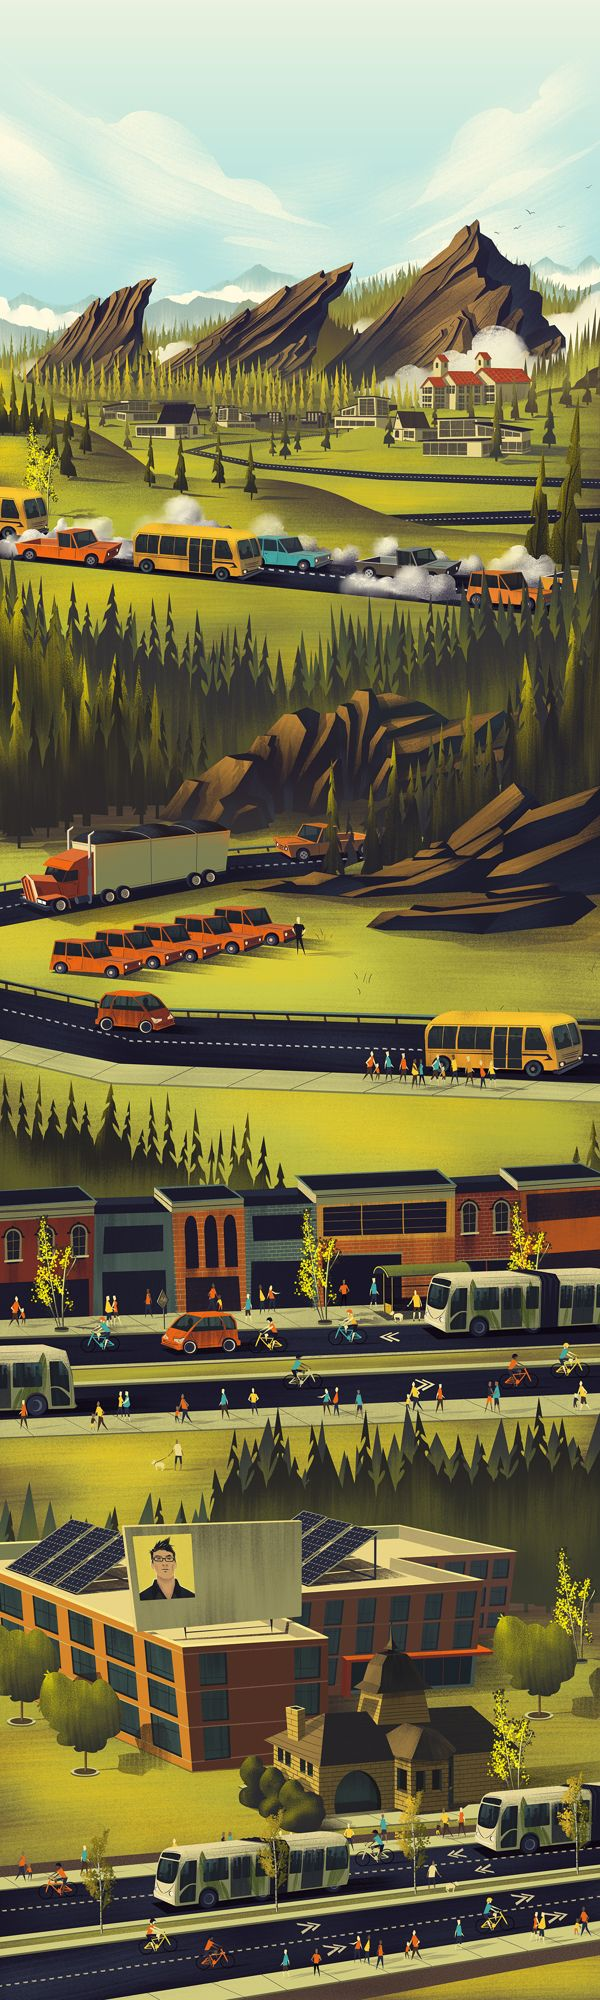 City of Boulder by Brian Miller, via Behance